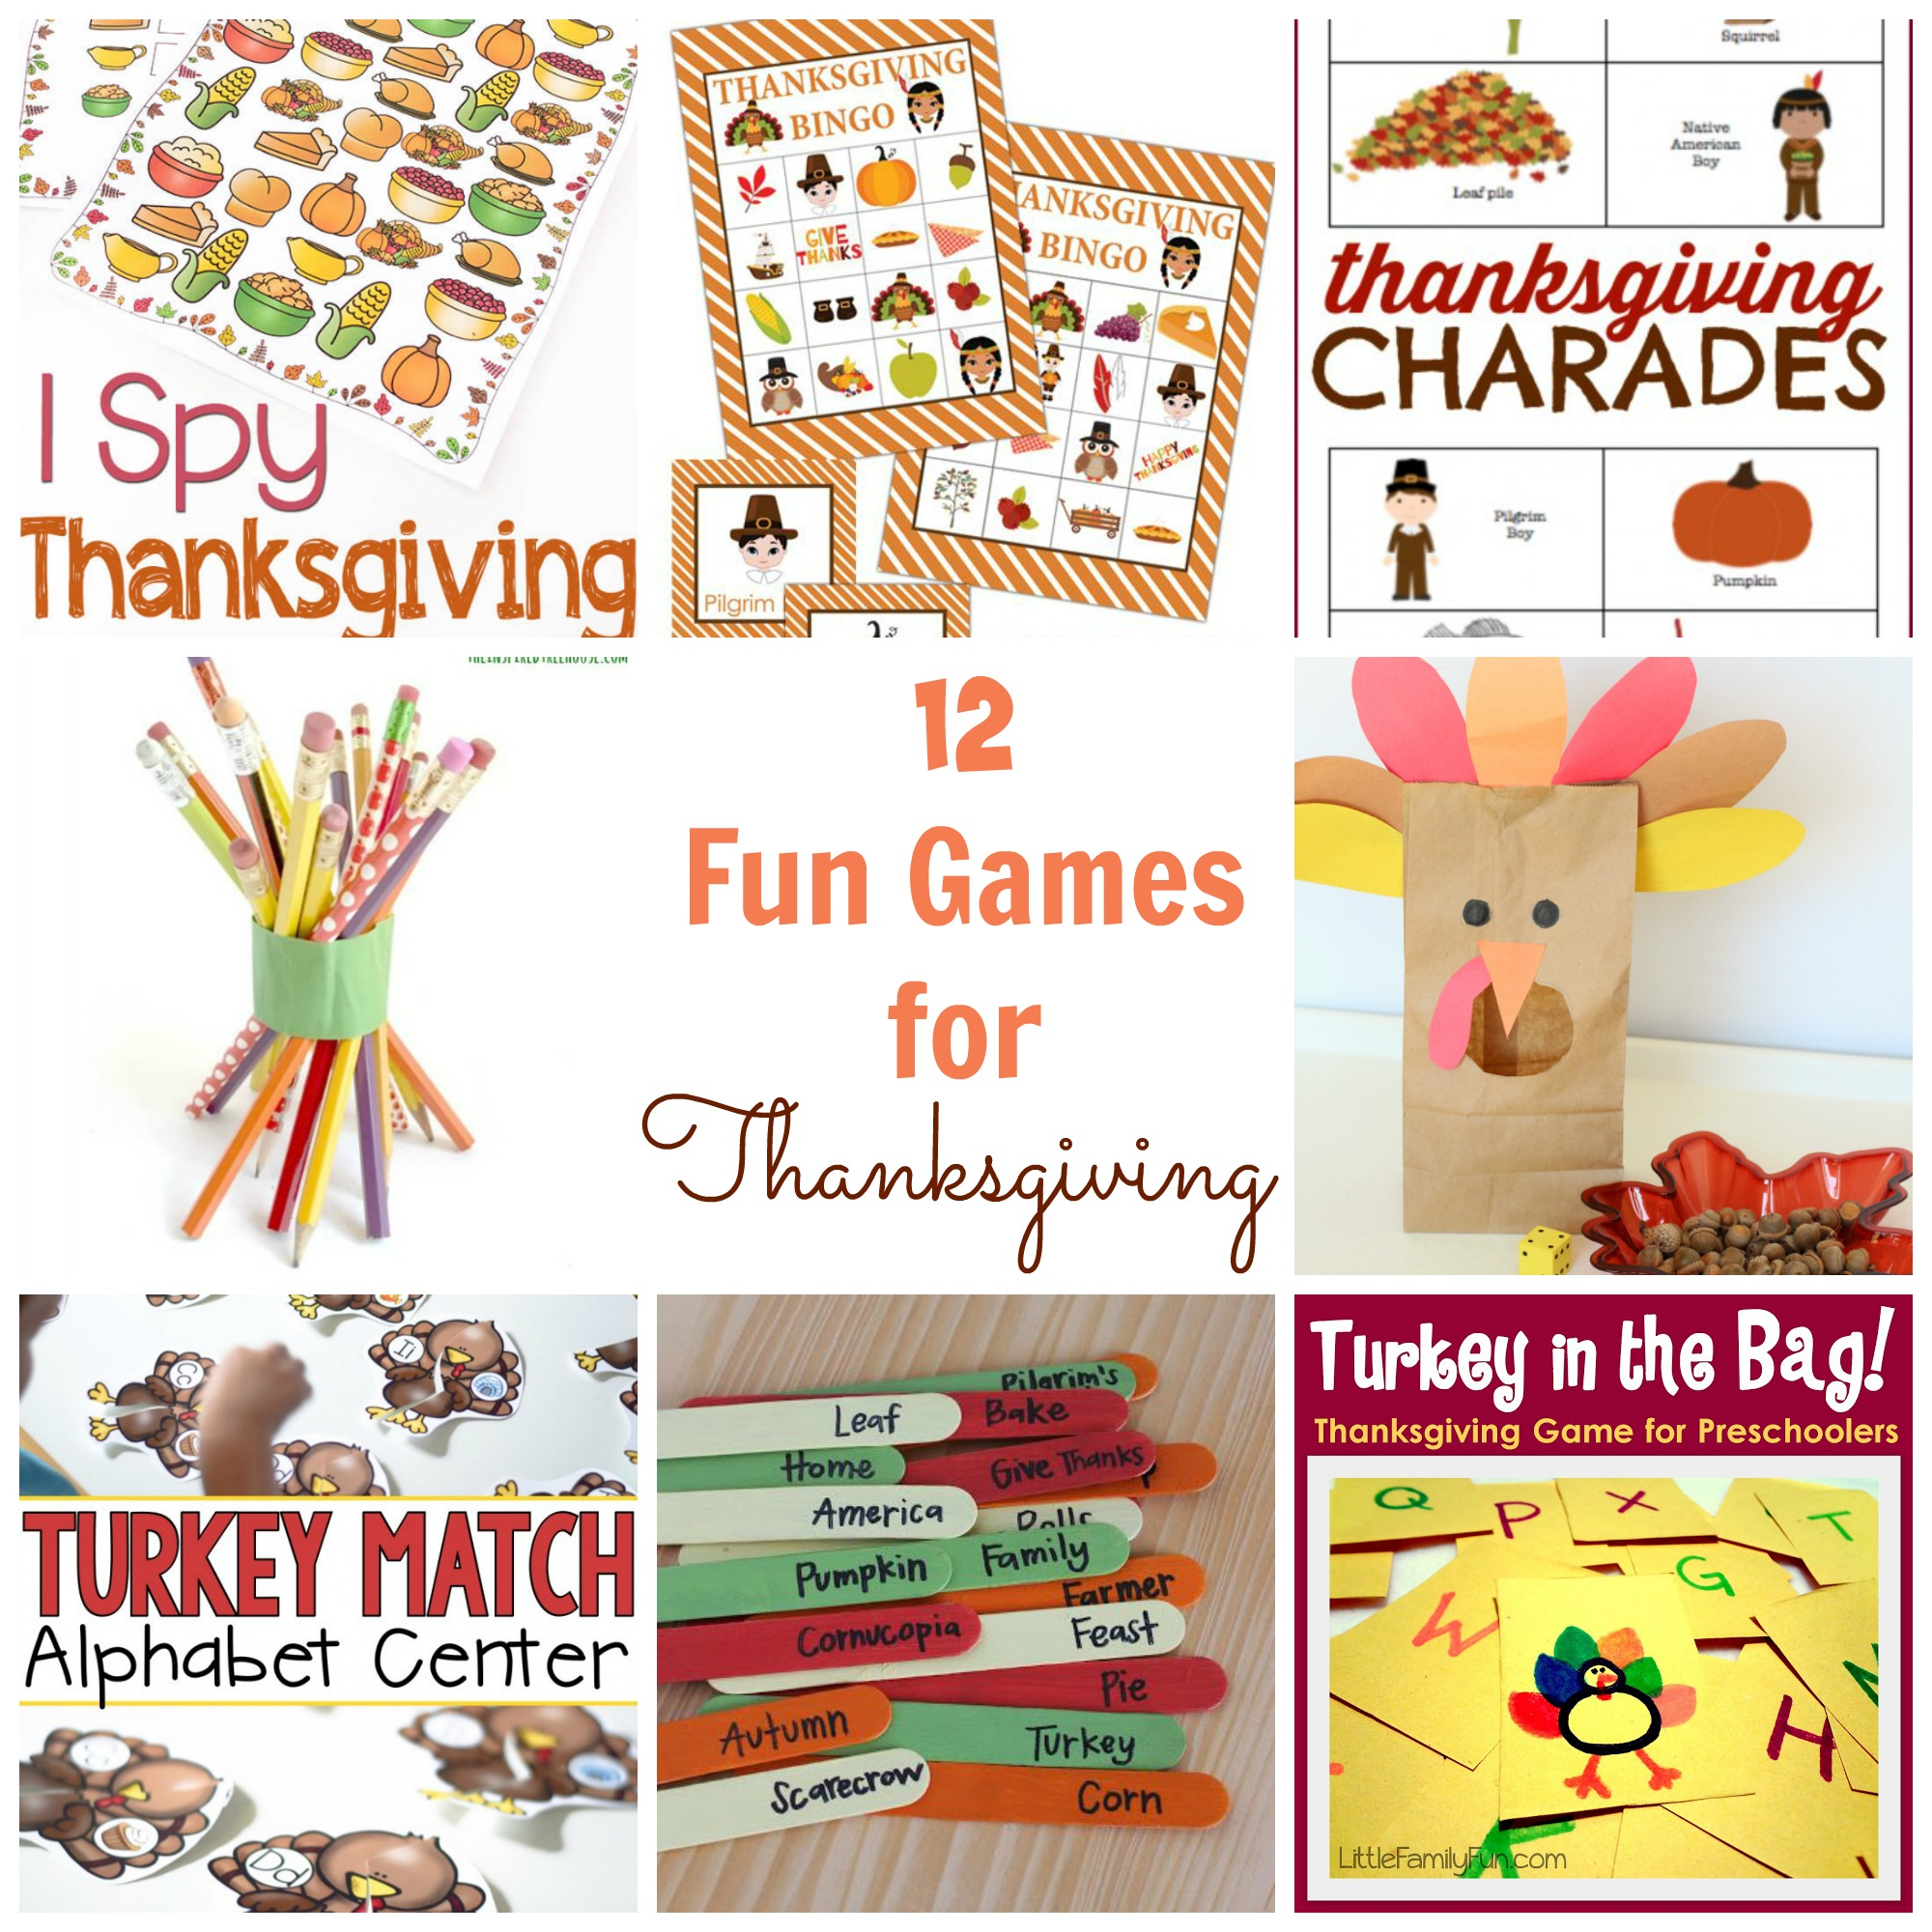 5 Games For Family Fun On Thanksgiving | TODAY - YouTube